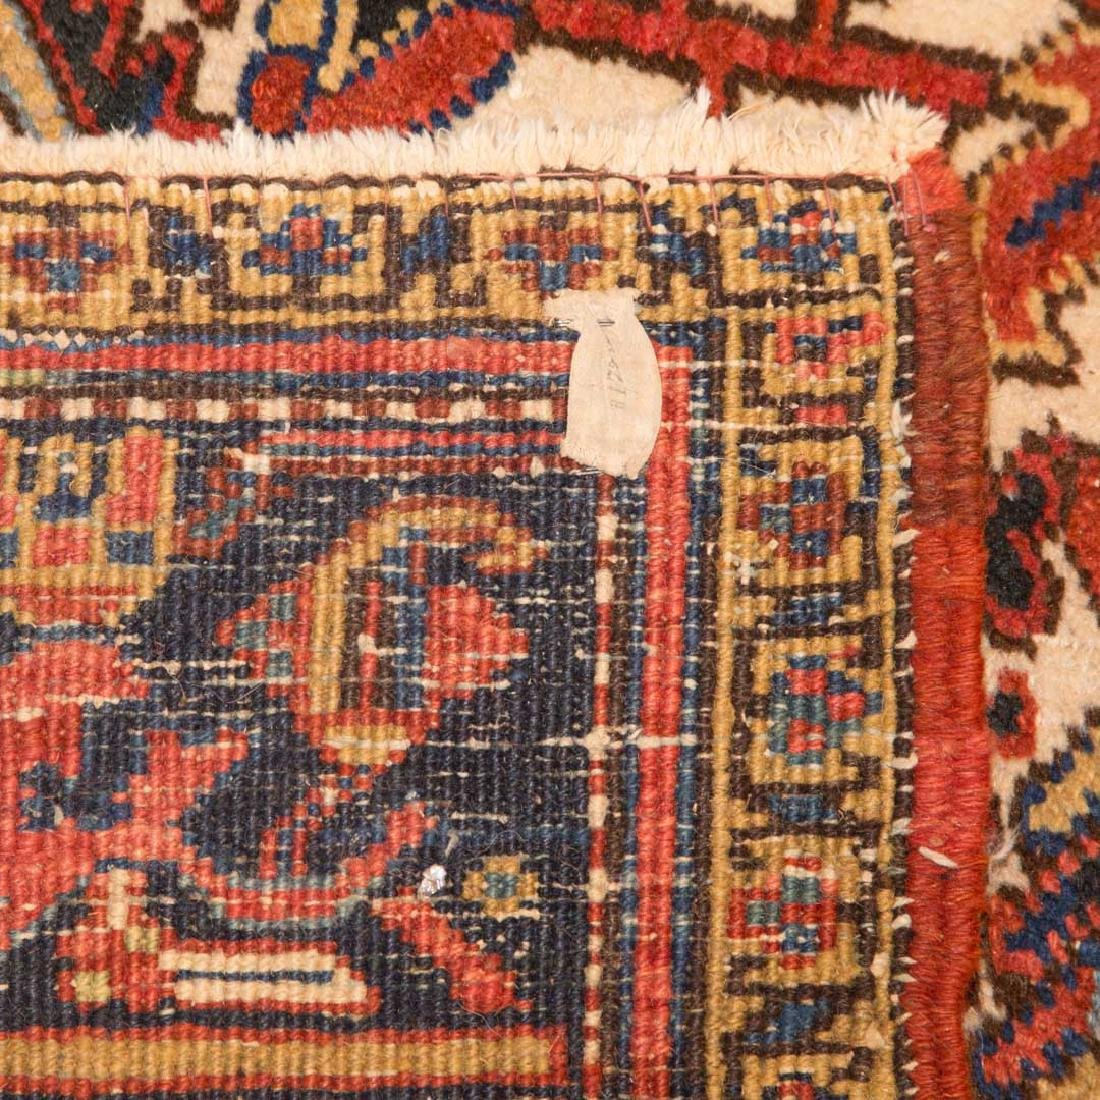 Persian Herez rug, approx. 8.9 x 11.4 - 3